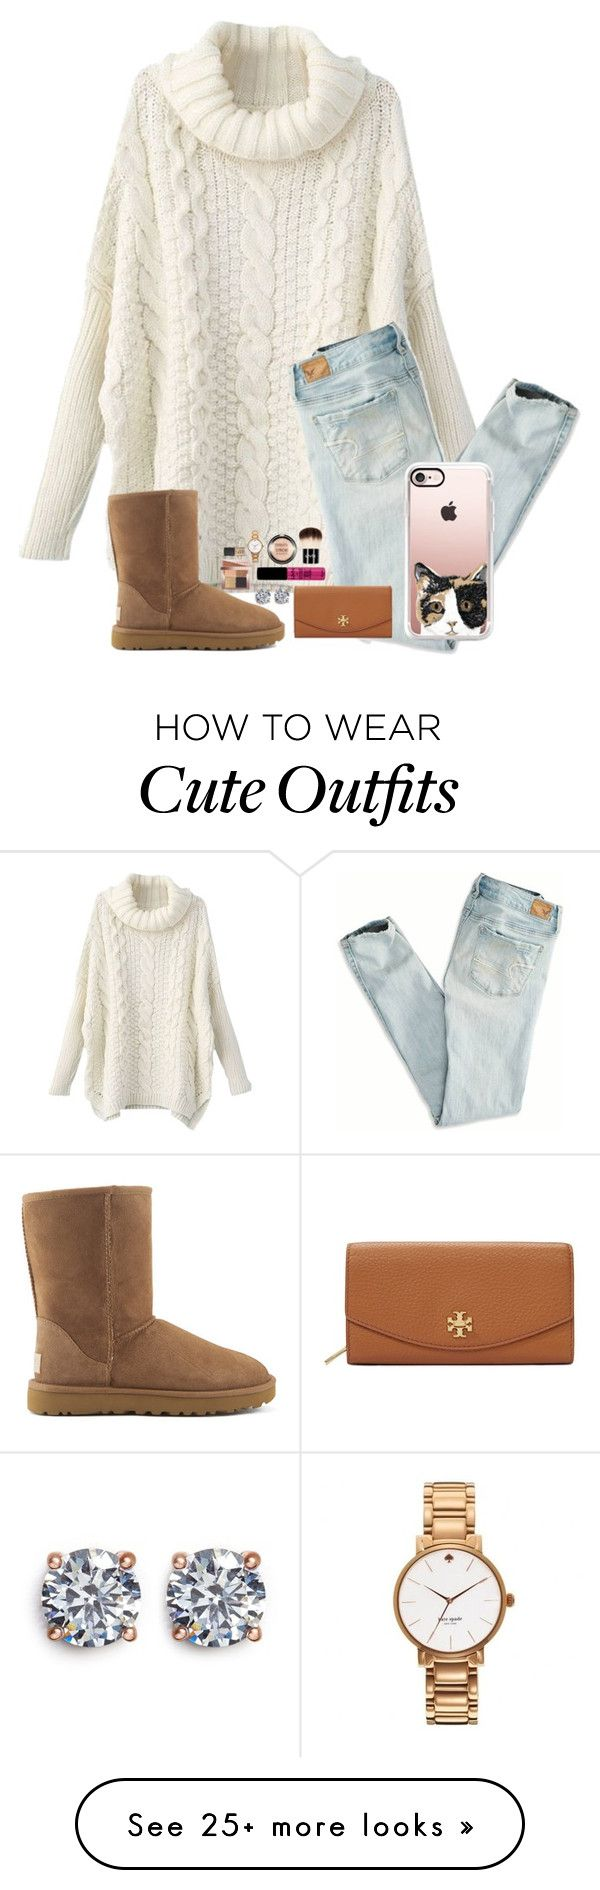 Cuz its finally appropriate to wear this :) by kari-luvs-u-2 on Polyvore featuring American Eagle Outfitters, UGG Australia, Tory Burch, Casetify, NYX, CZ by Kenneth Jay Lane, Bobbi Brown Cosmetics, Kate Spade and NARS Cosmetics